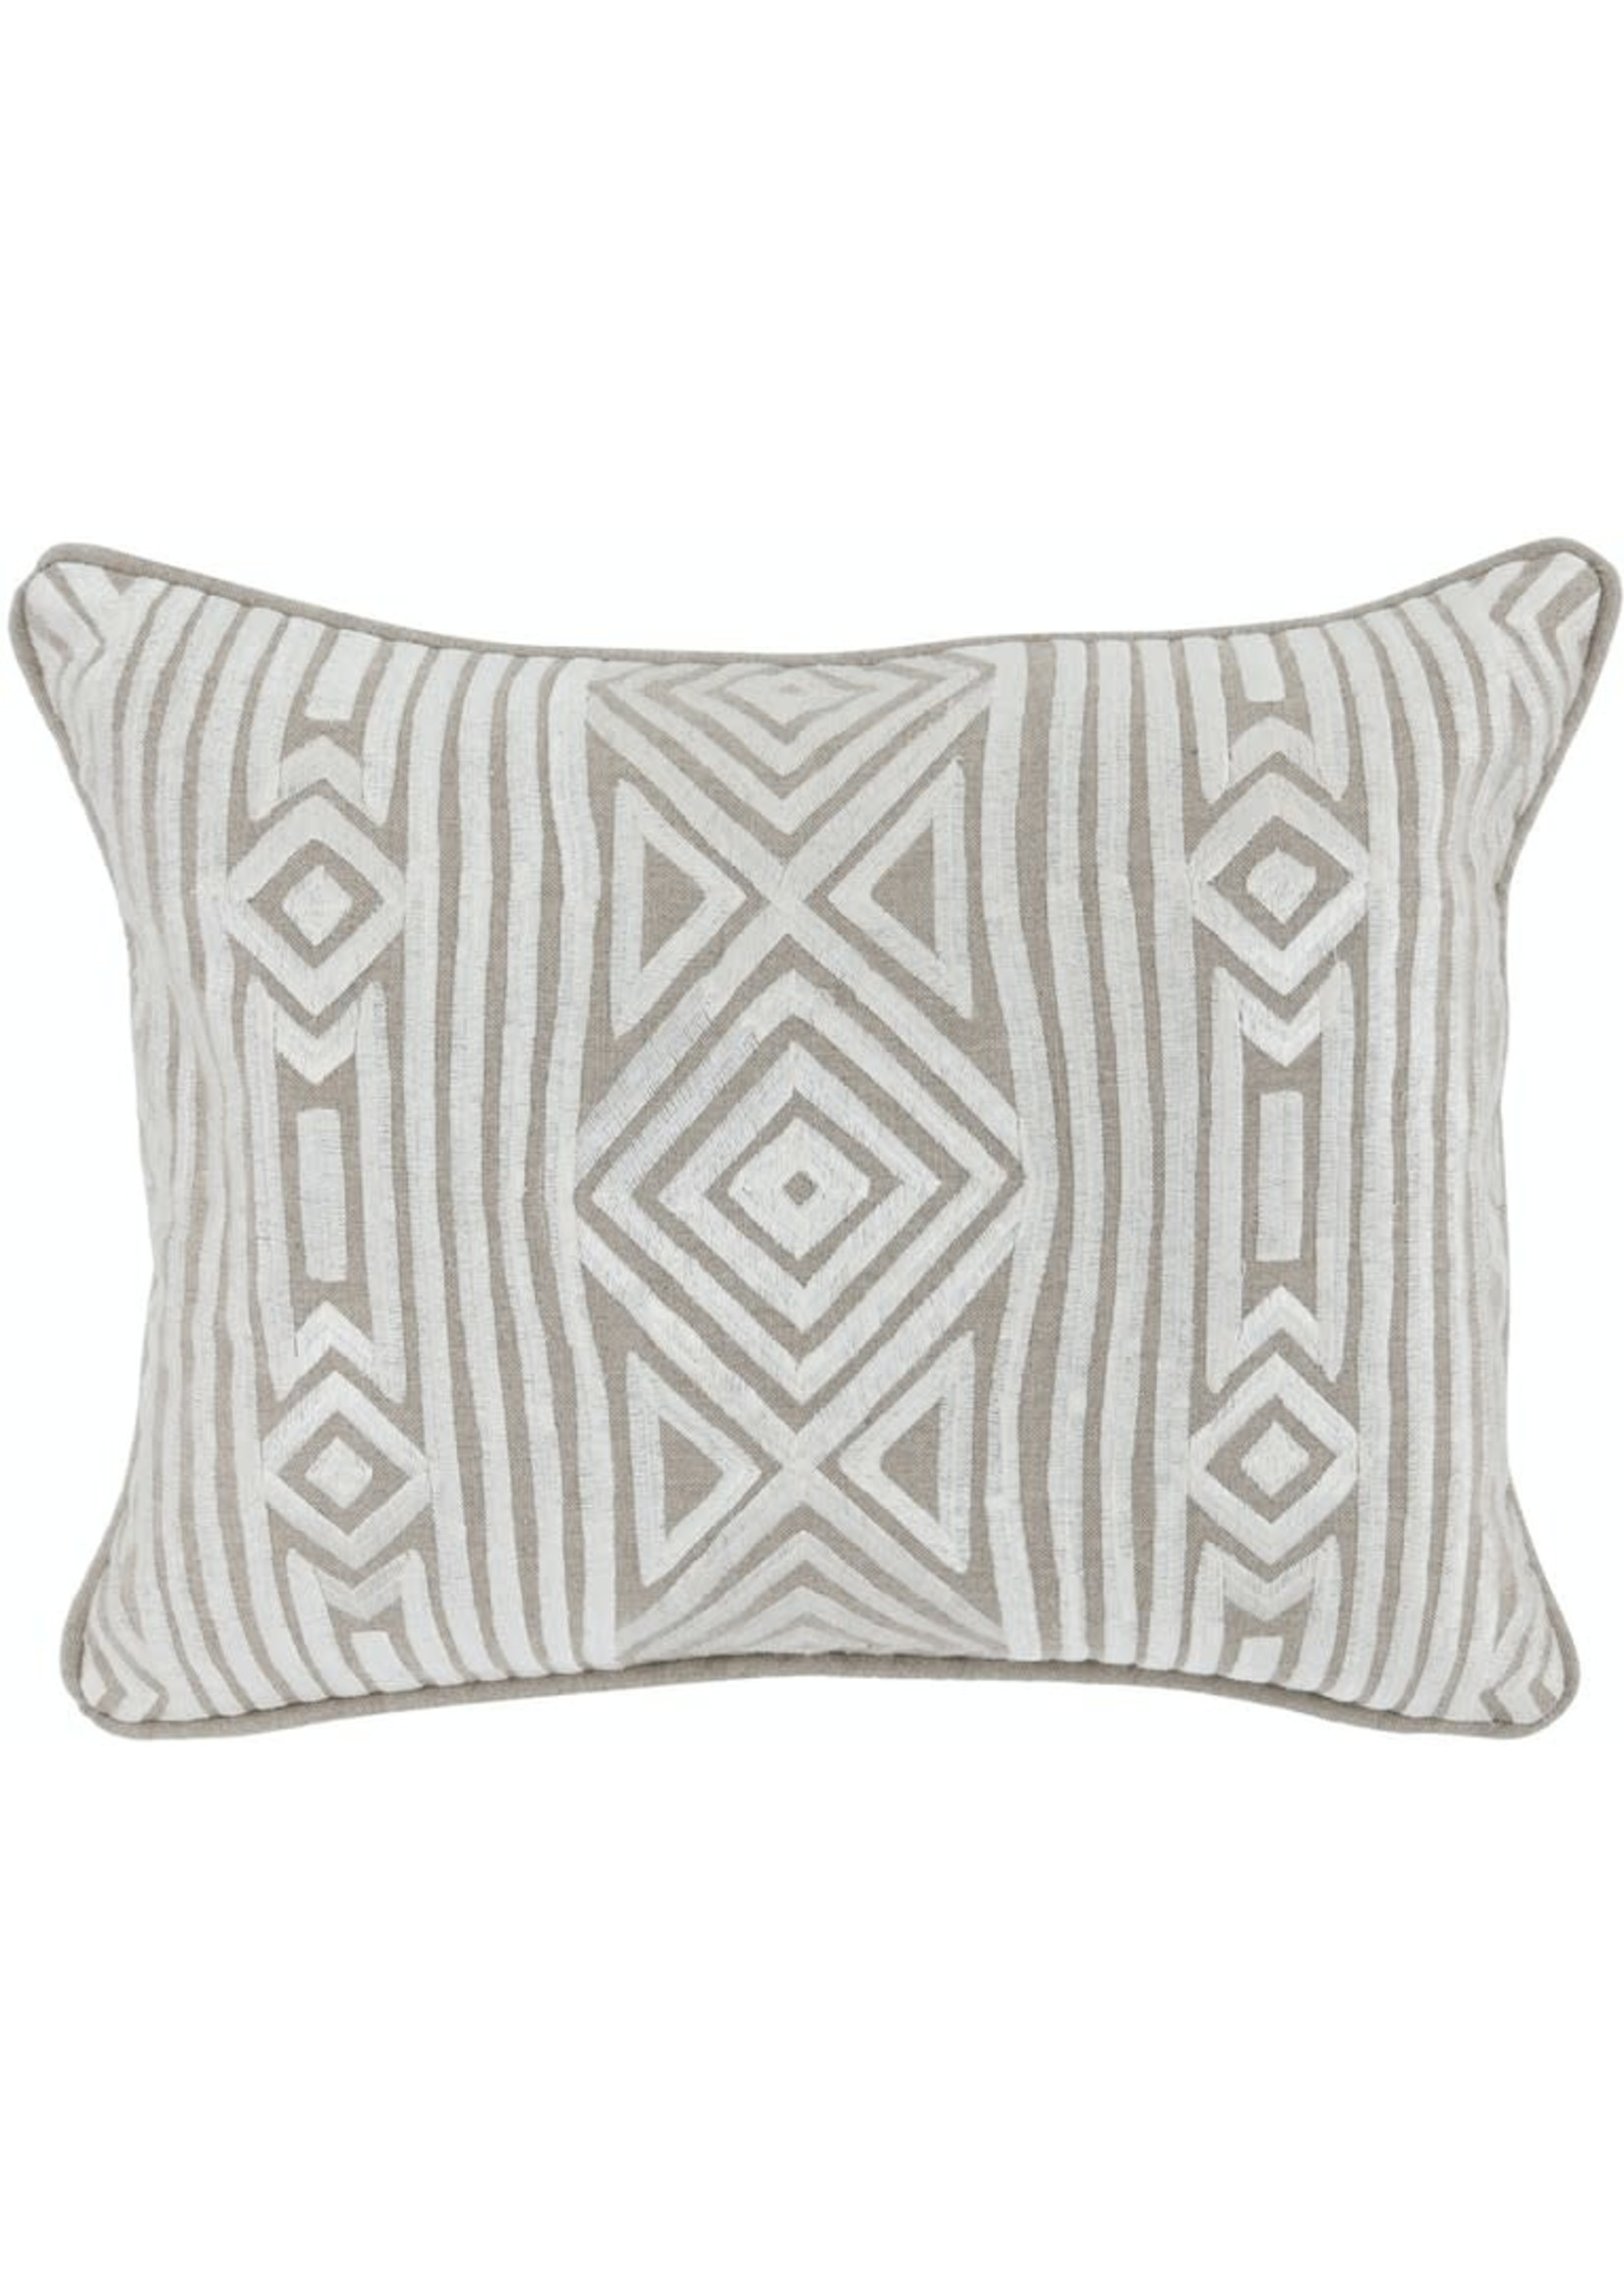 IN RALEIGH NATURAL/IVORY 12X16 PILLOW